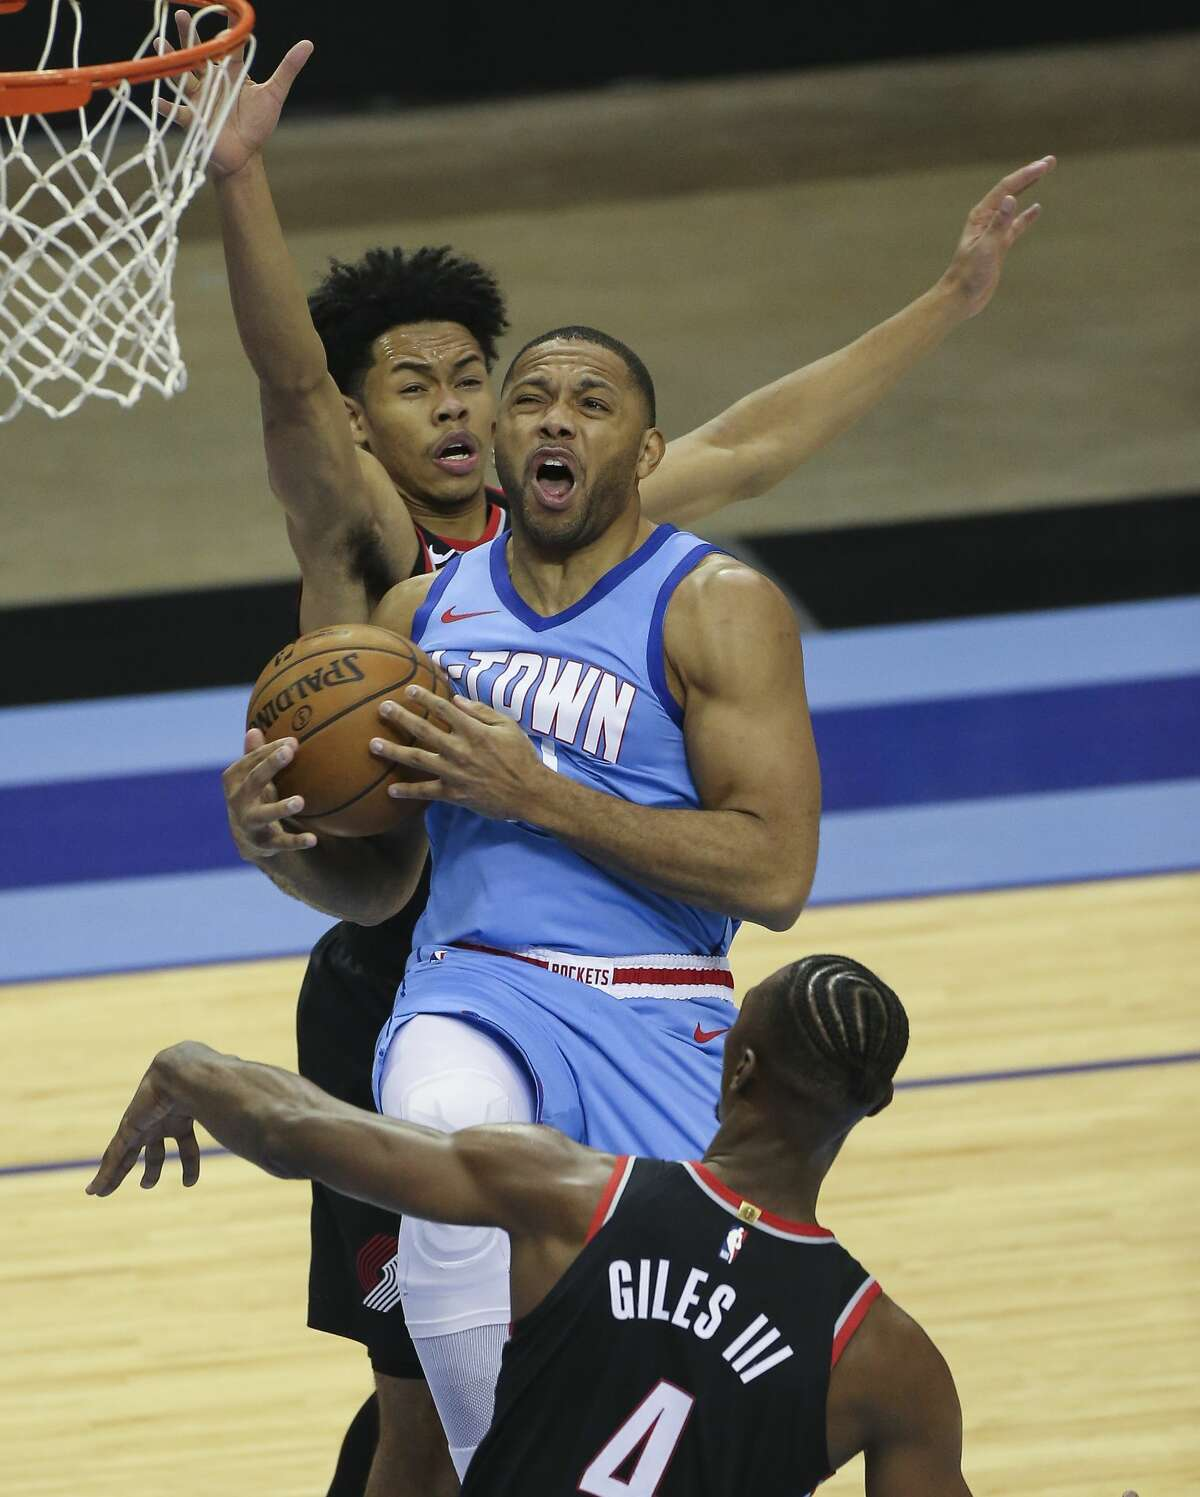 Houston Rockets guard Eric Gordon (10) cannot score a basket while Portland Trail Blazers players Anfernee Simons (1) and Harry Giles III (4) are defensingduring the fourth quarter of the NBA game Thursday, Jan. 28, 2021, at Toyota Center in Houston.